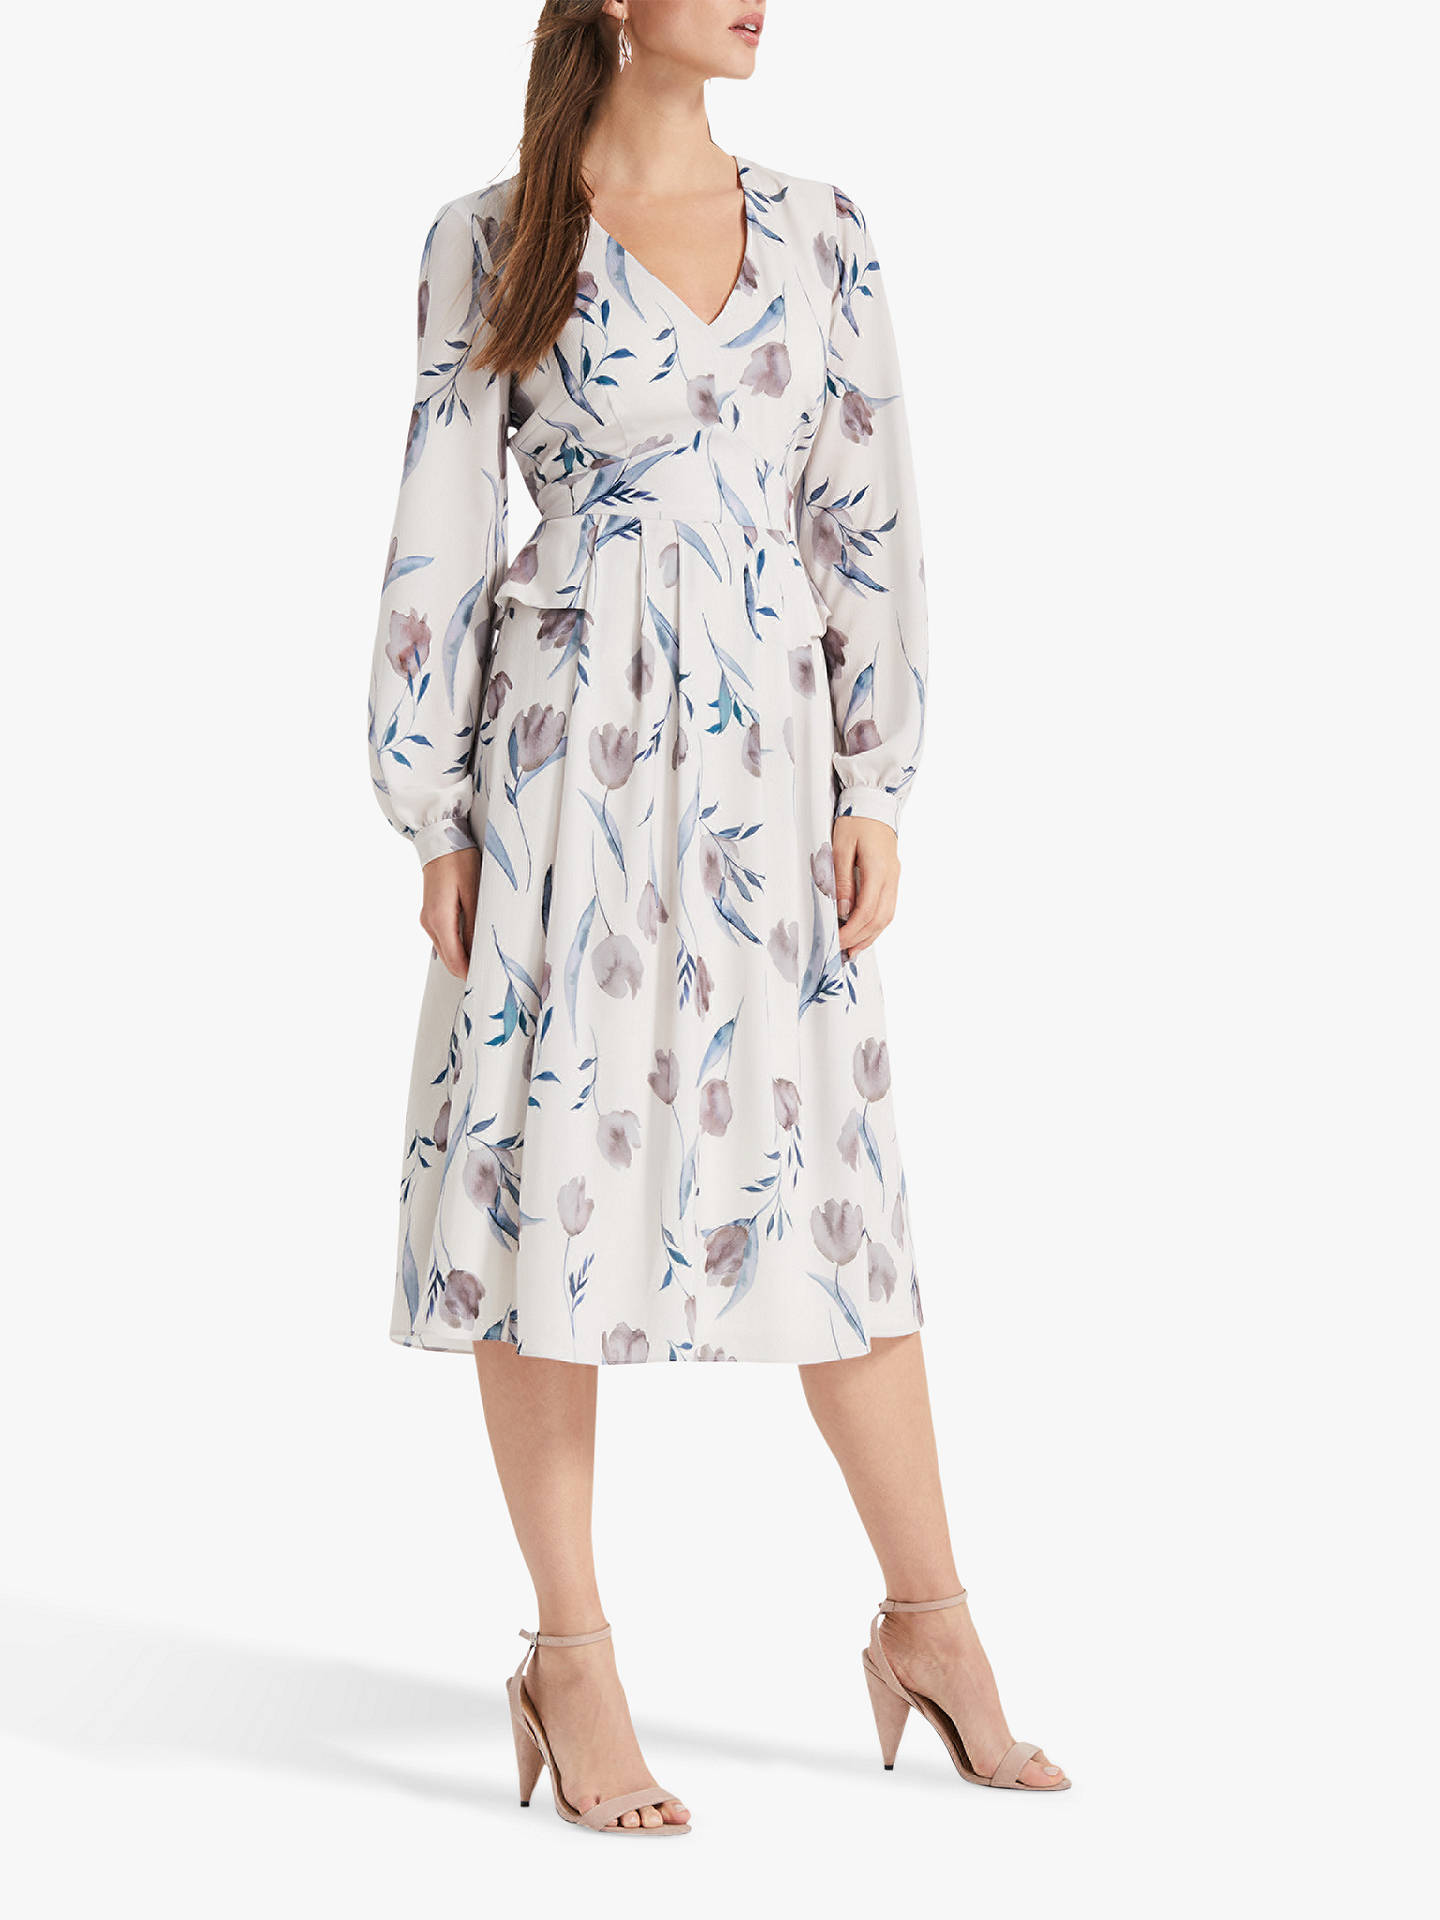 Phase Eight Emanuella Floral Printed Dress Oyster